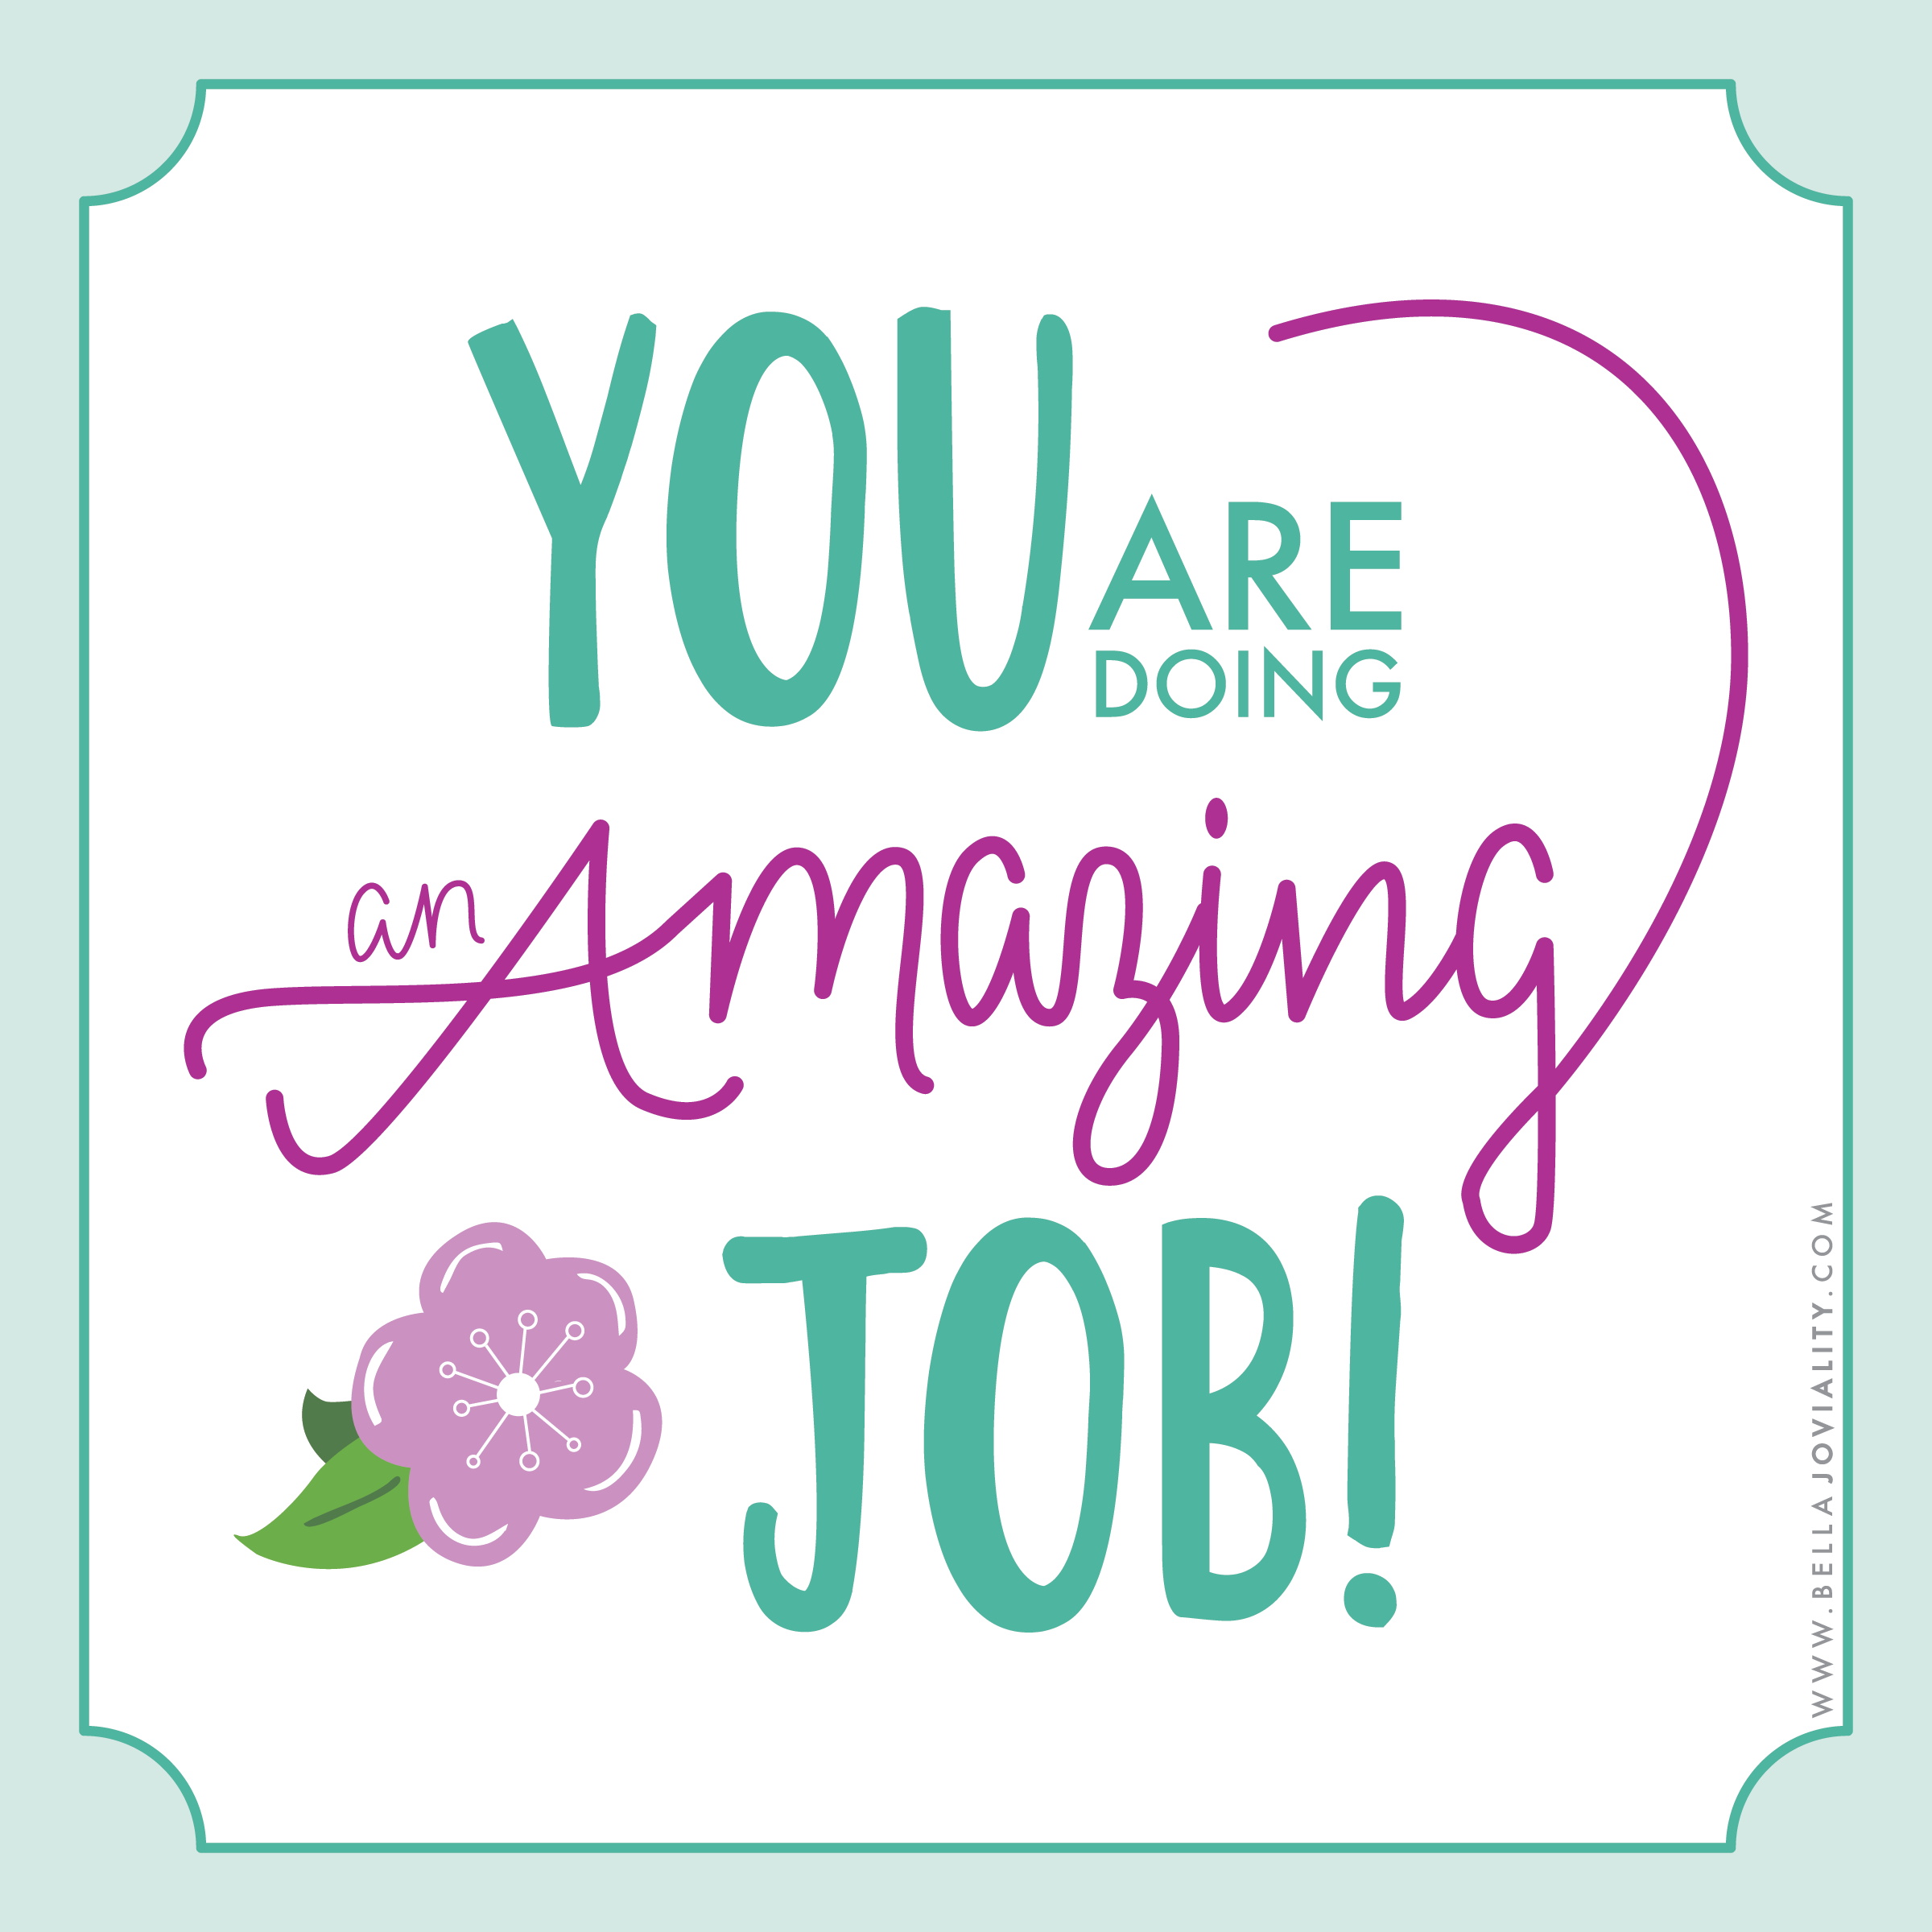 Amazing Job: You Are Doing An Amazing Job